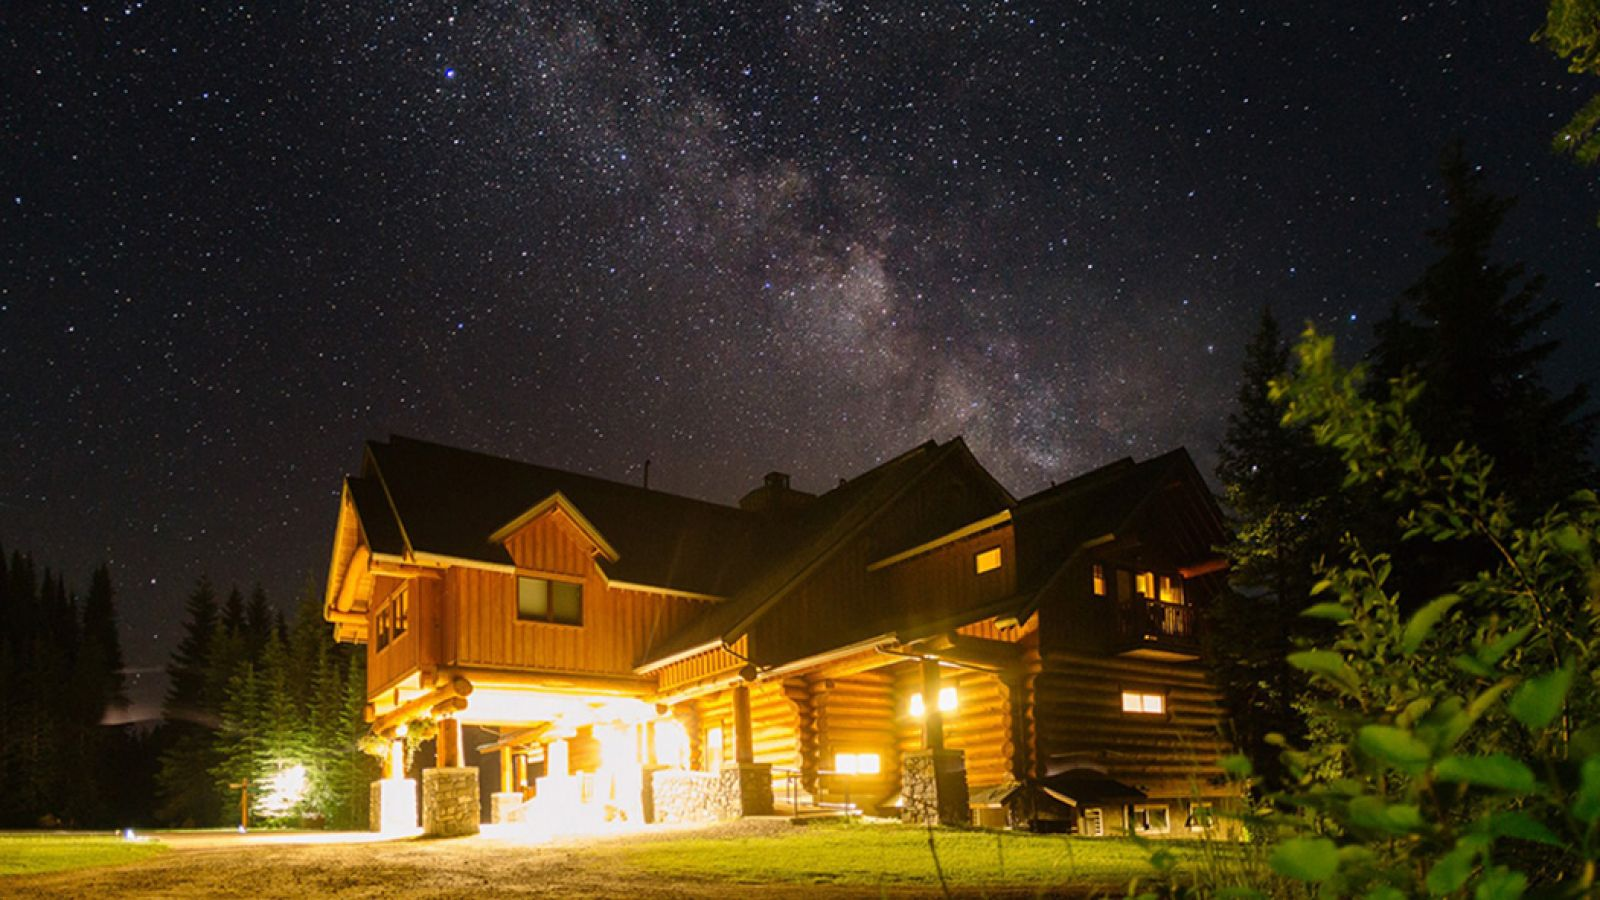 Island Lake Lodge in the night sky.